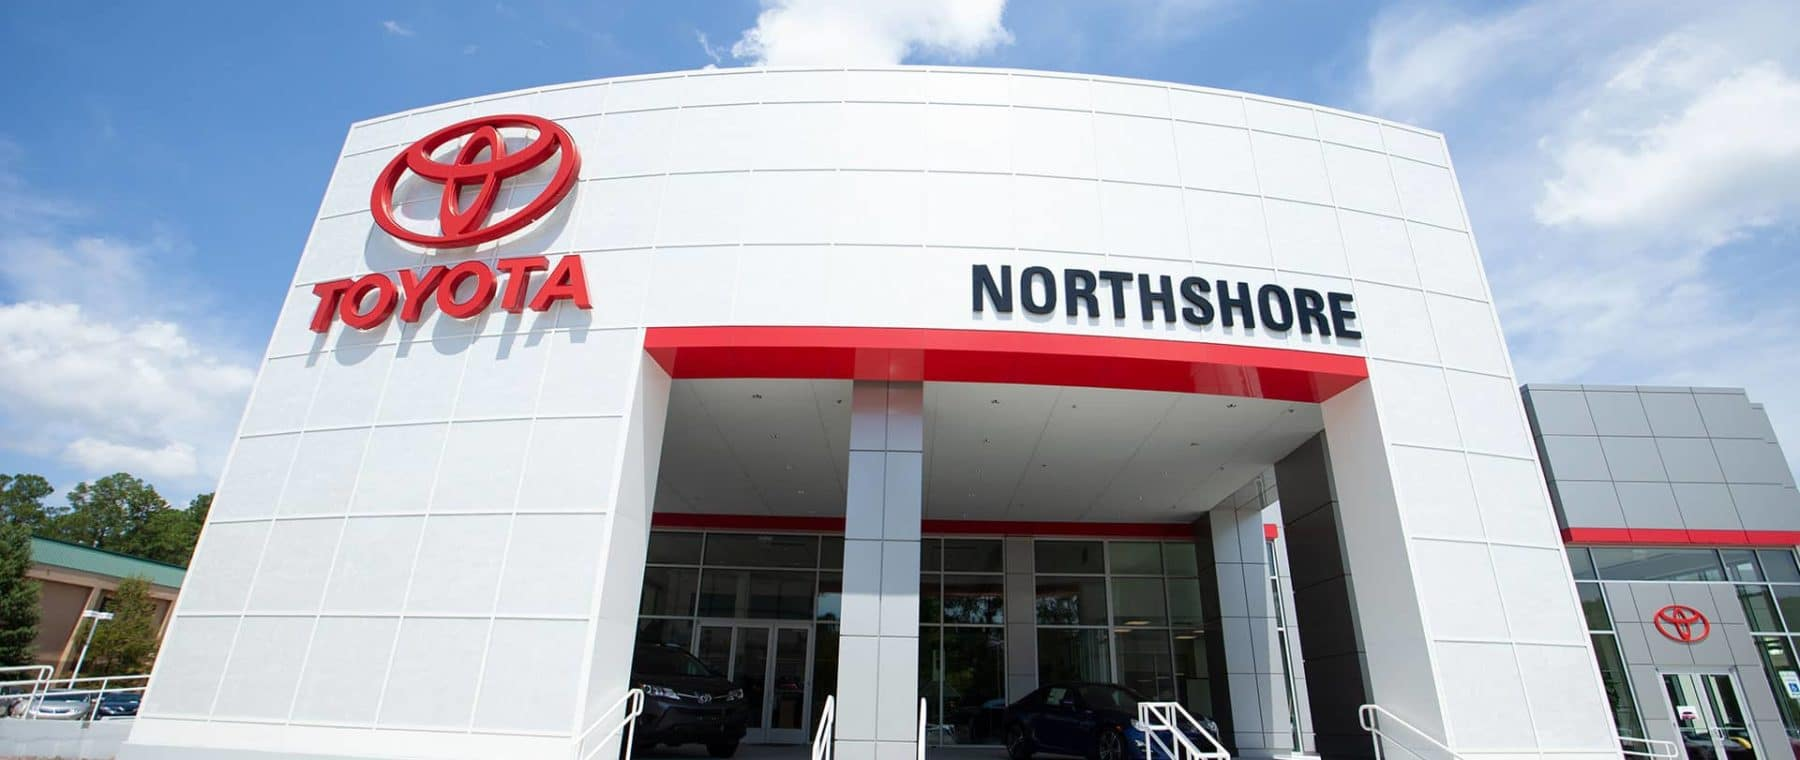 The front of Northshore Toyota